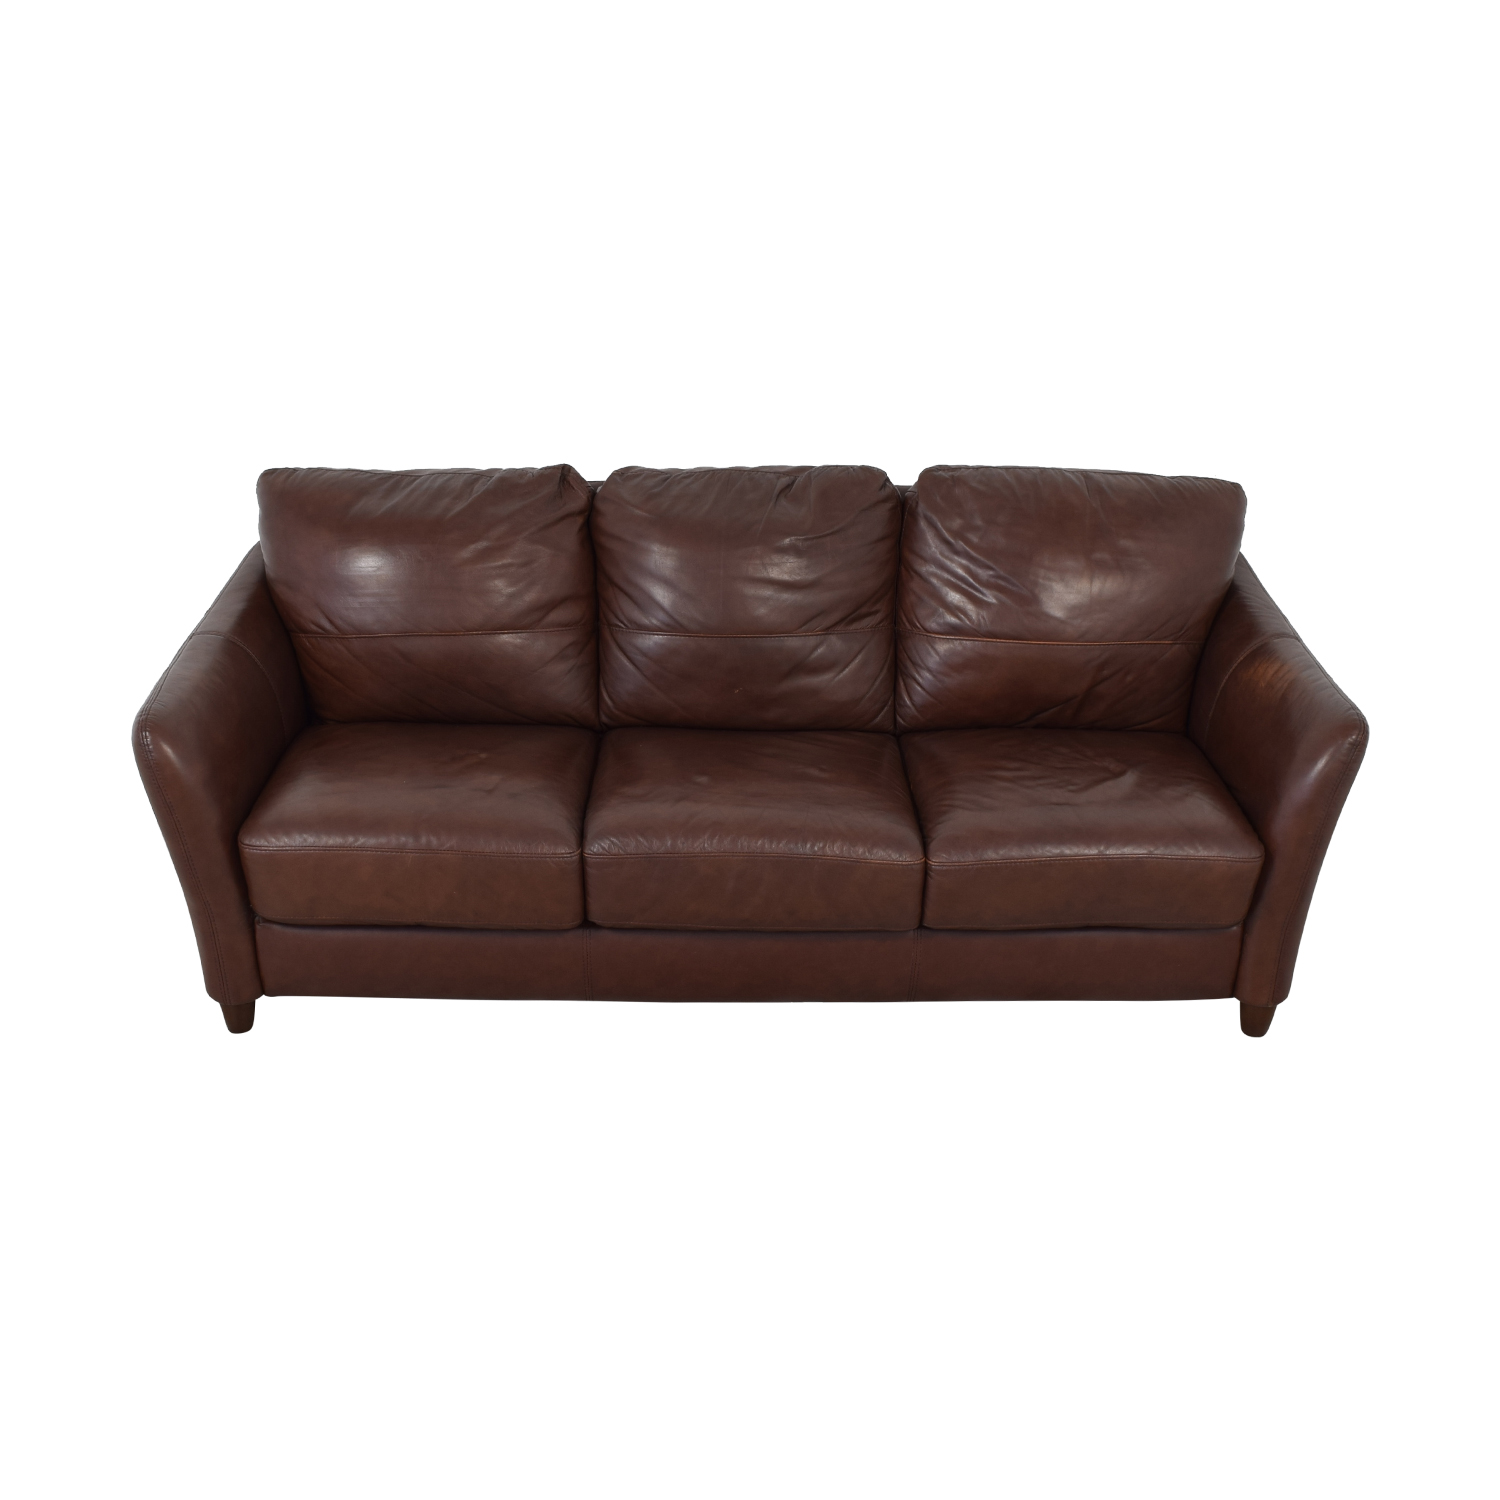 shop Raymour & Flanigan Leather Sofa Raymour & Flanigan